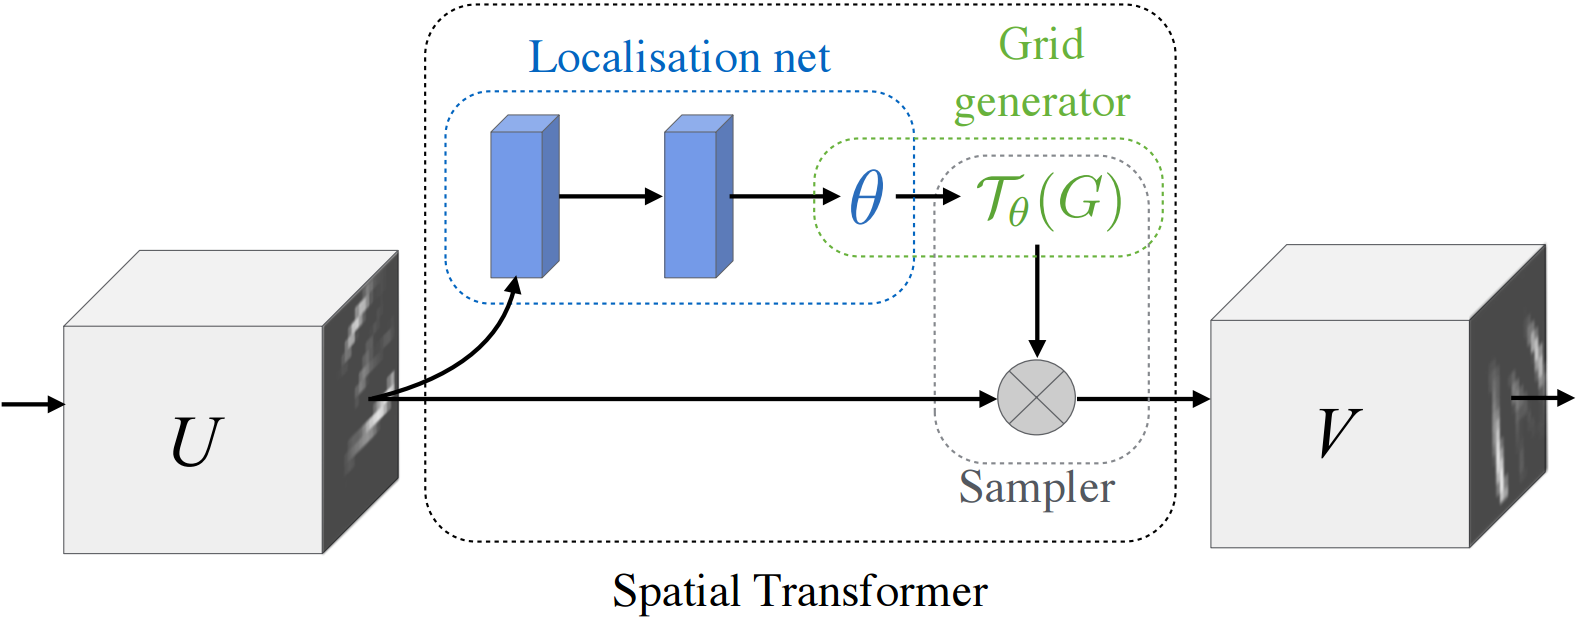 Spatial transformer networks convolutional neural networks for image 4 architecture of a spatial transformer module u and v are the in and output feature map respectively the goal of the spatial transformer is to baditri Choice Image